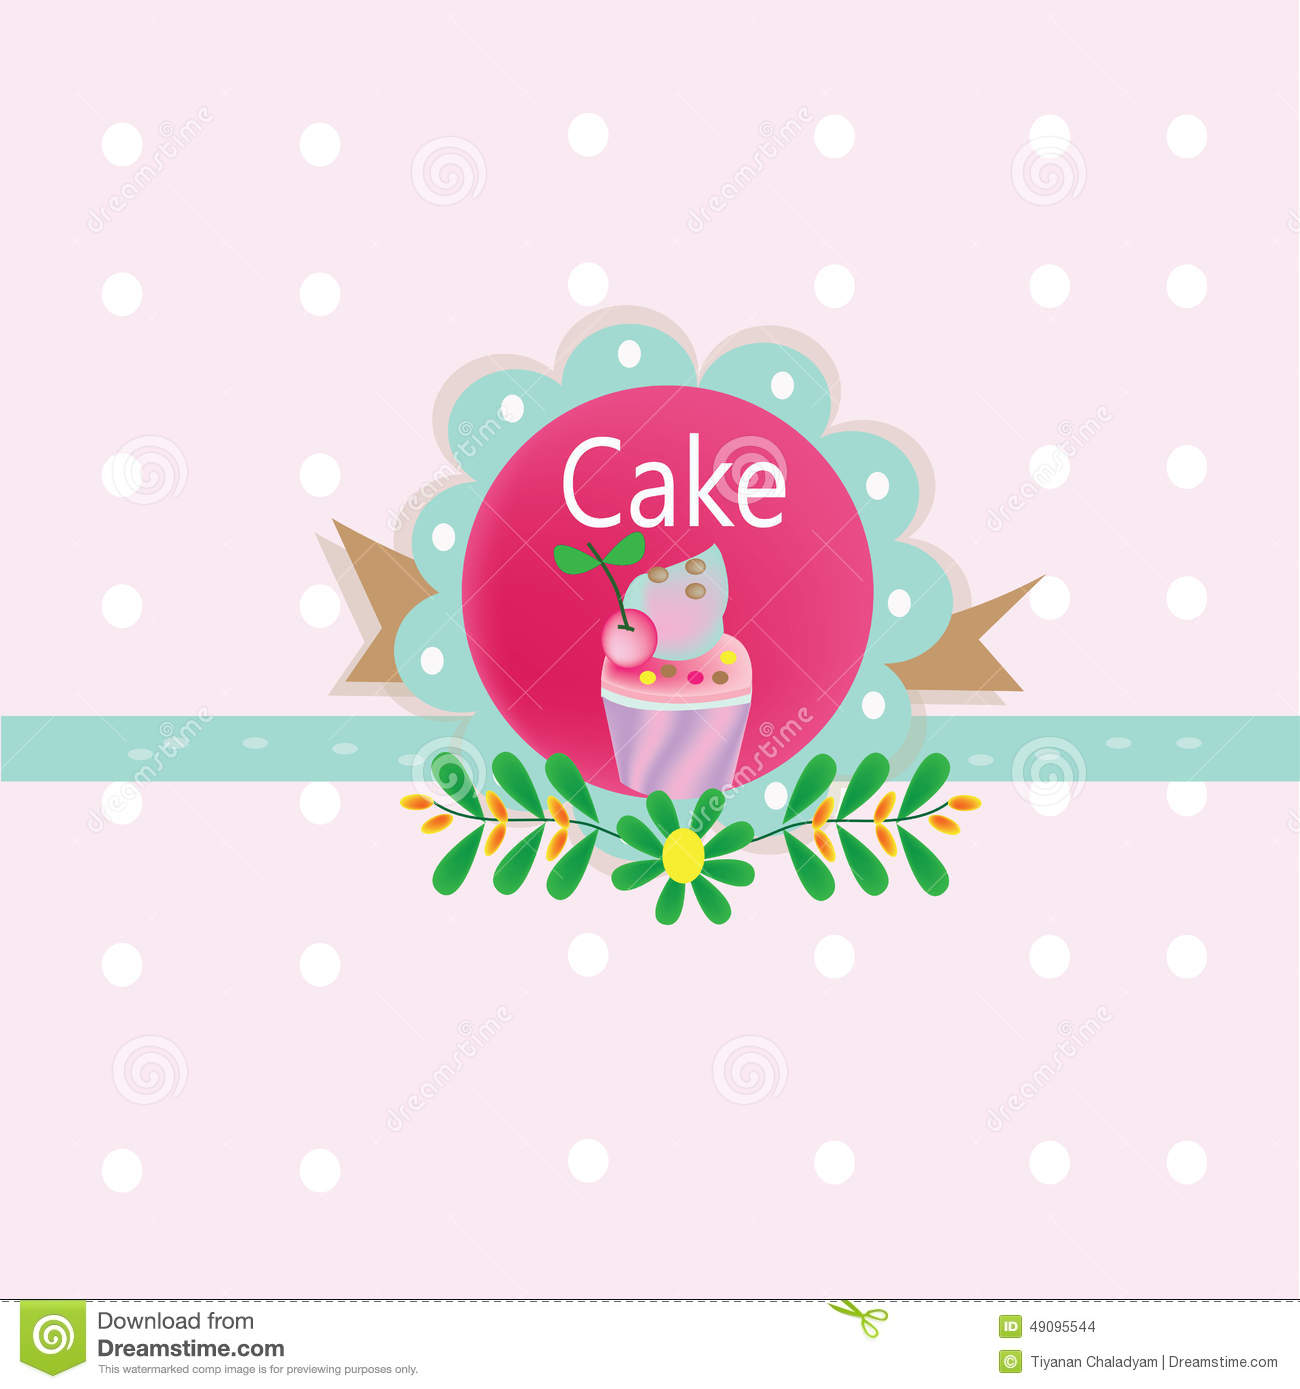 Cake Sweet Logo Stock Illustration - Image: 49095544